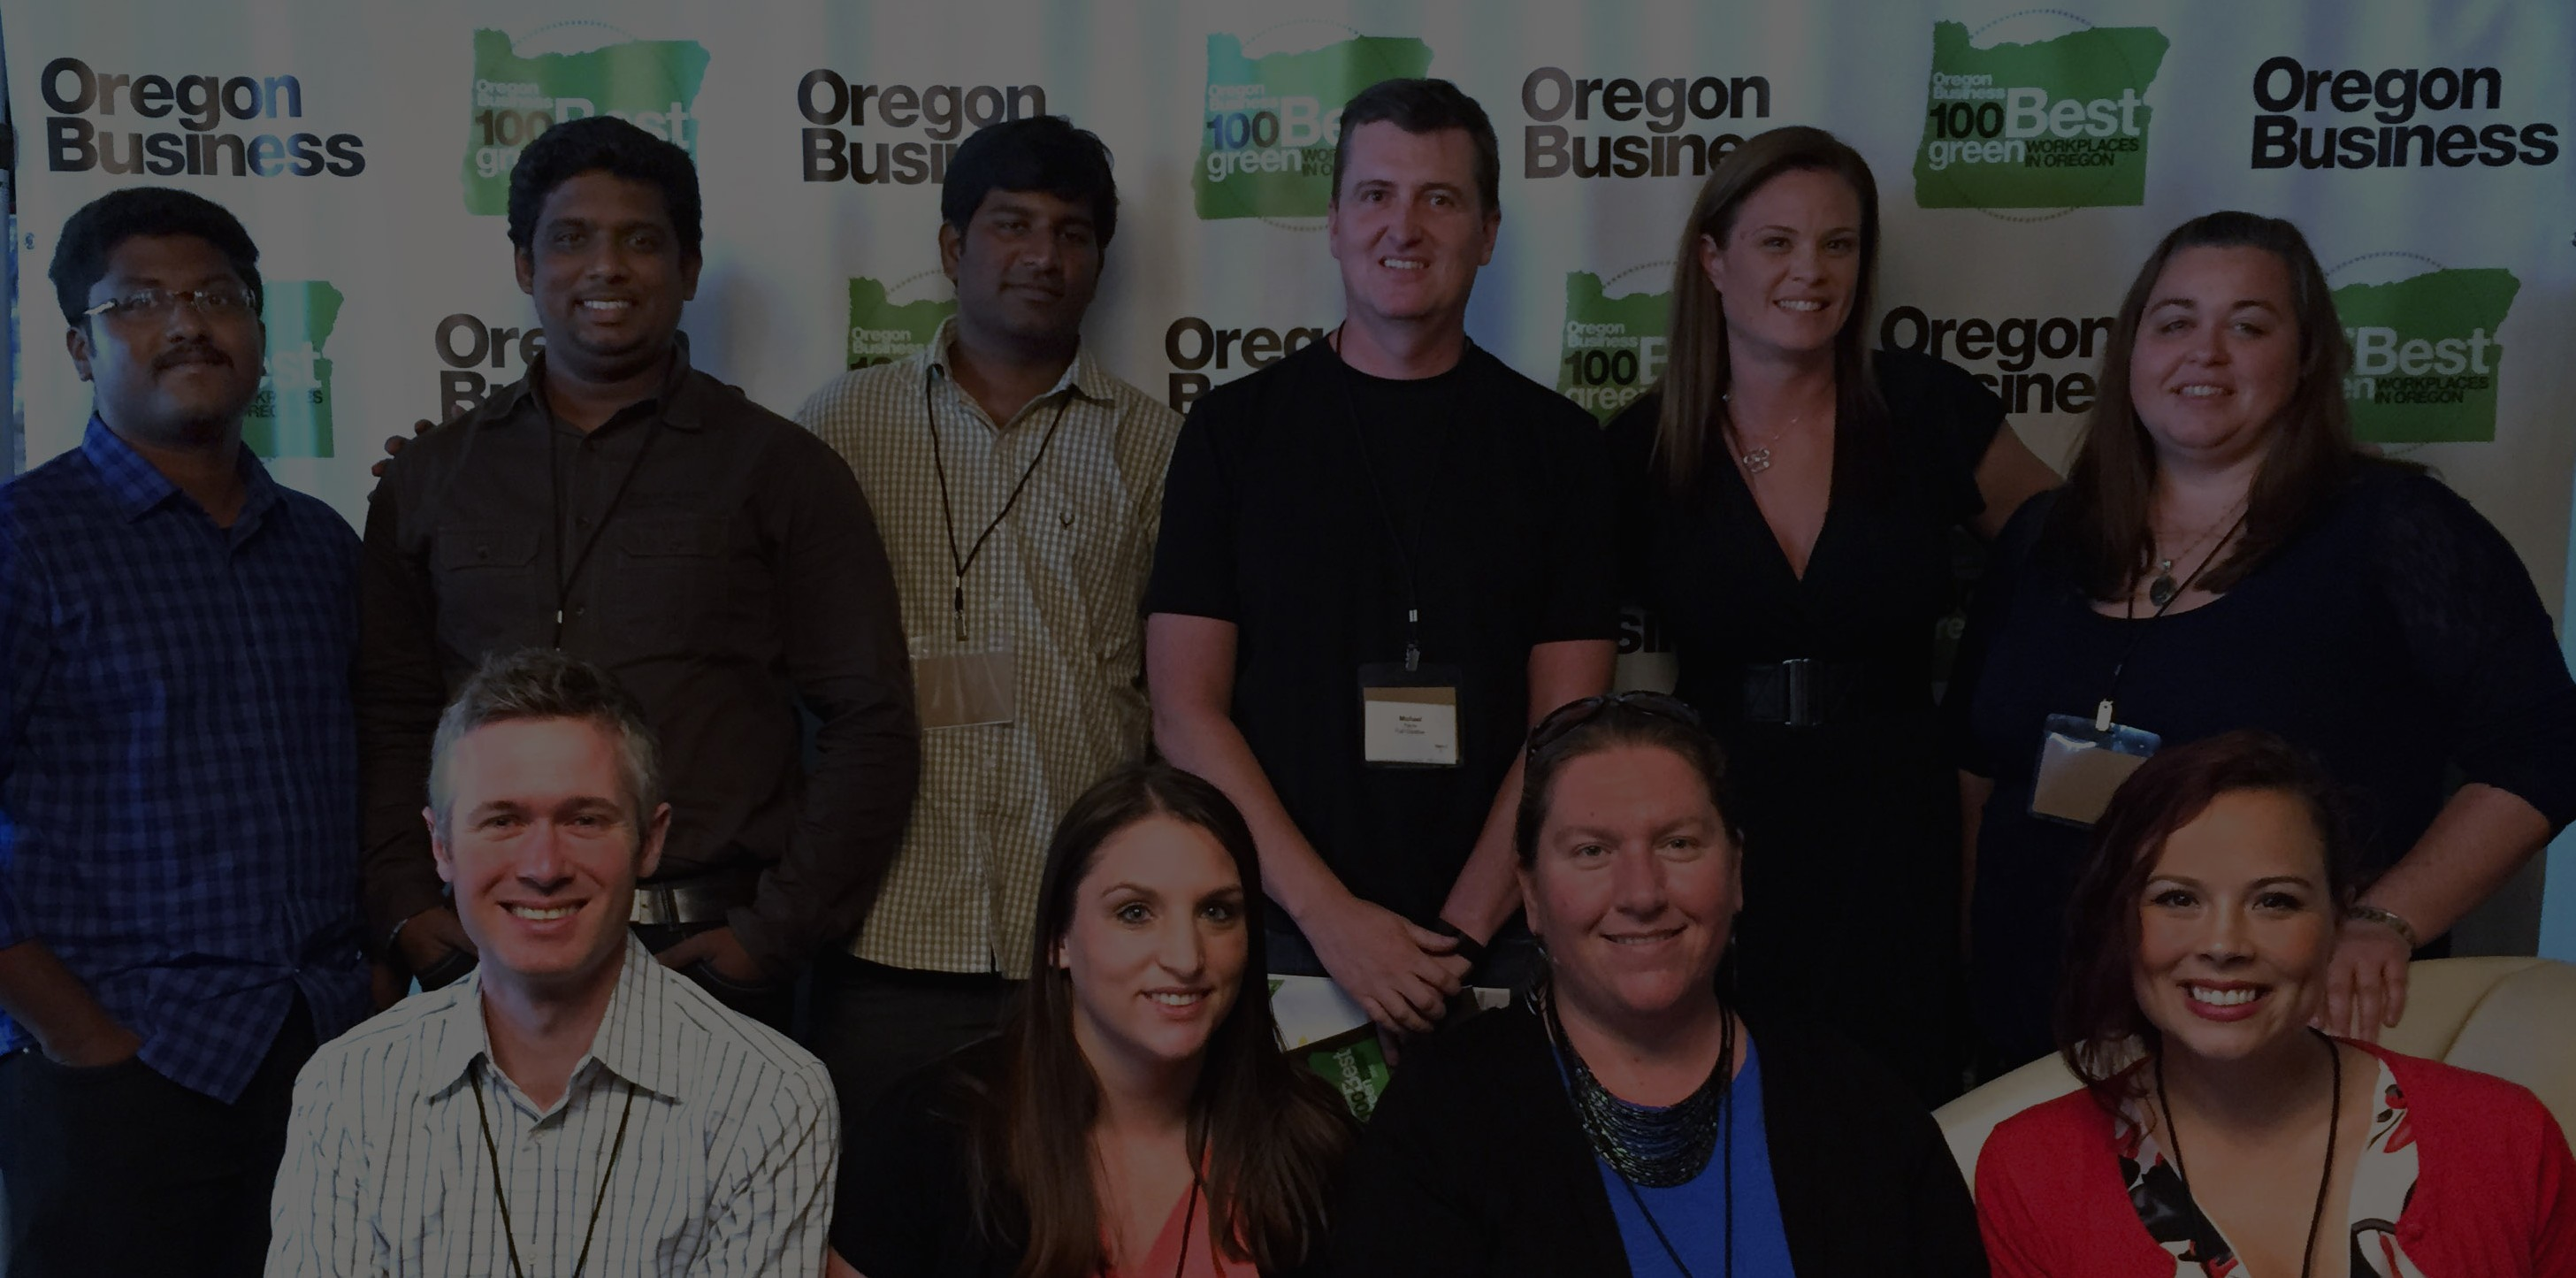 FULL Creative at Oregon Business Magazine's Green Workplaces event